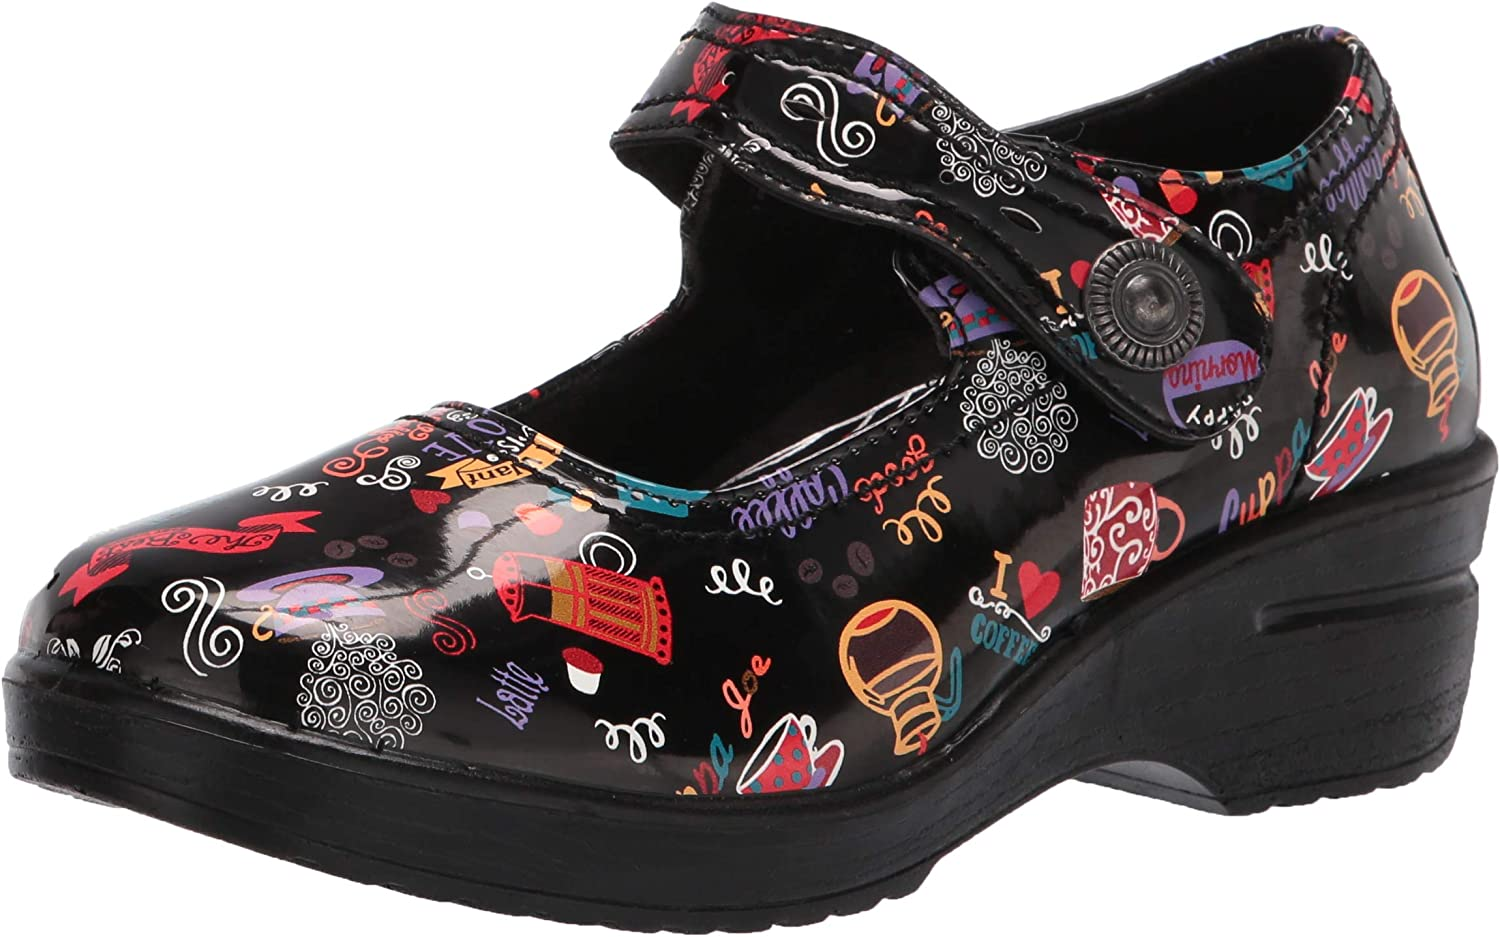 Detroit Mall Easy Works womens Letsee Overseas parallel import regular item Clog Black 9.5 Hot Coffee Patent